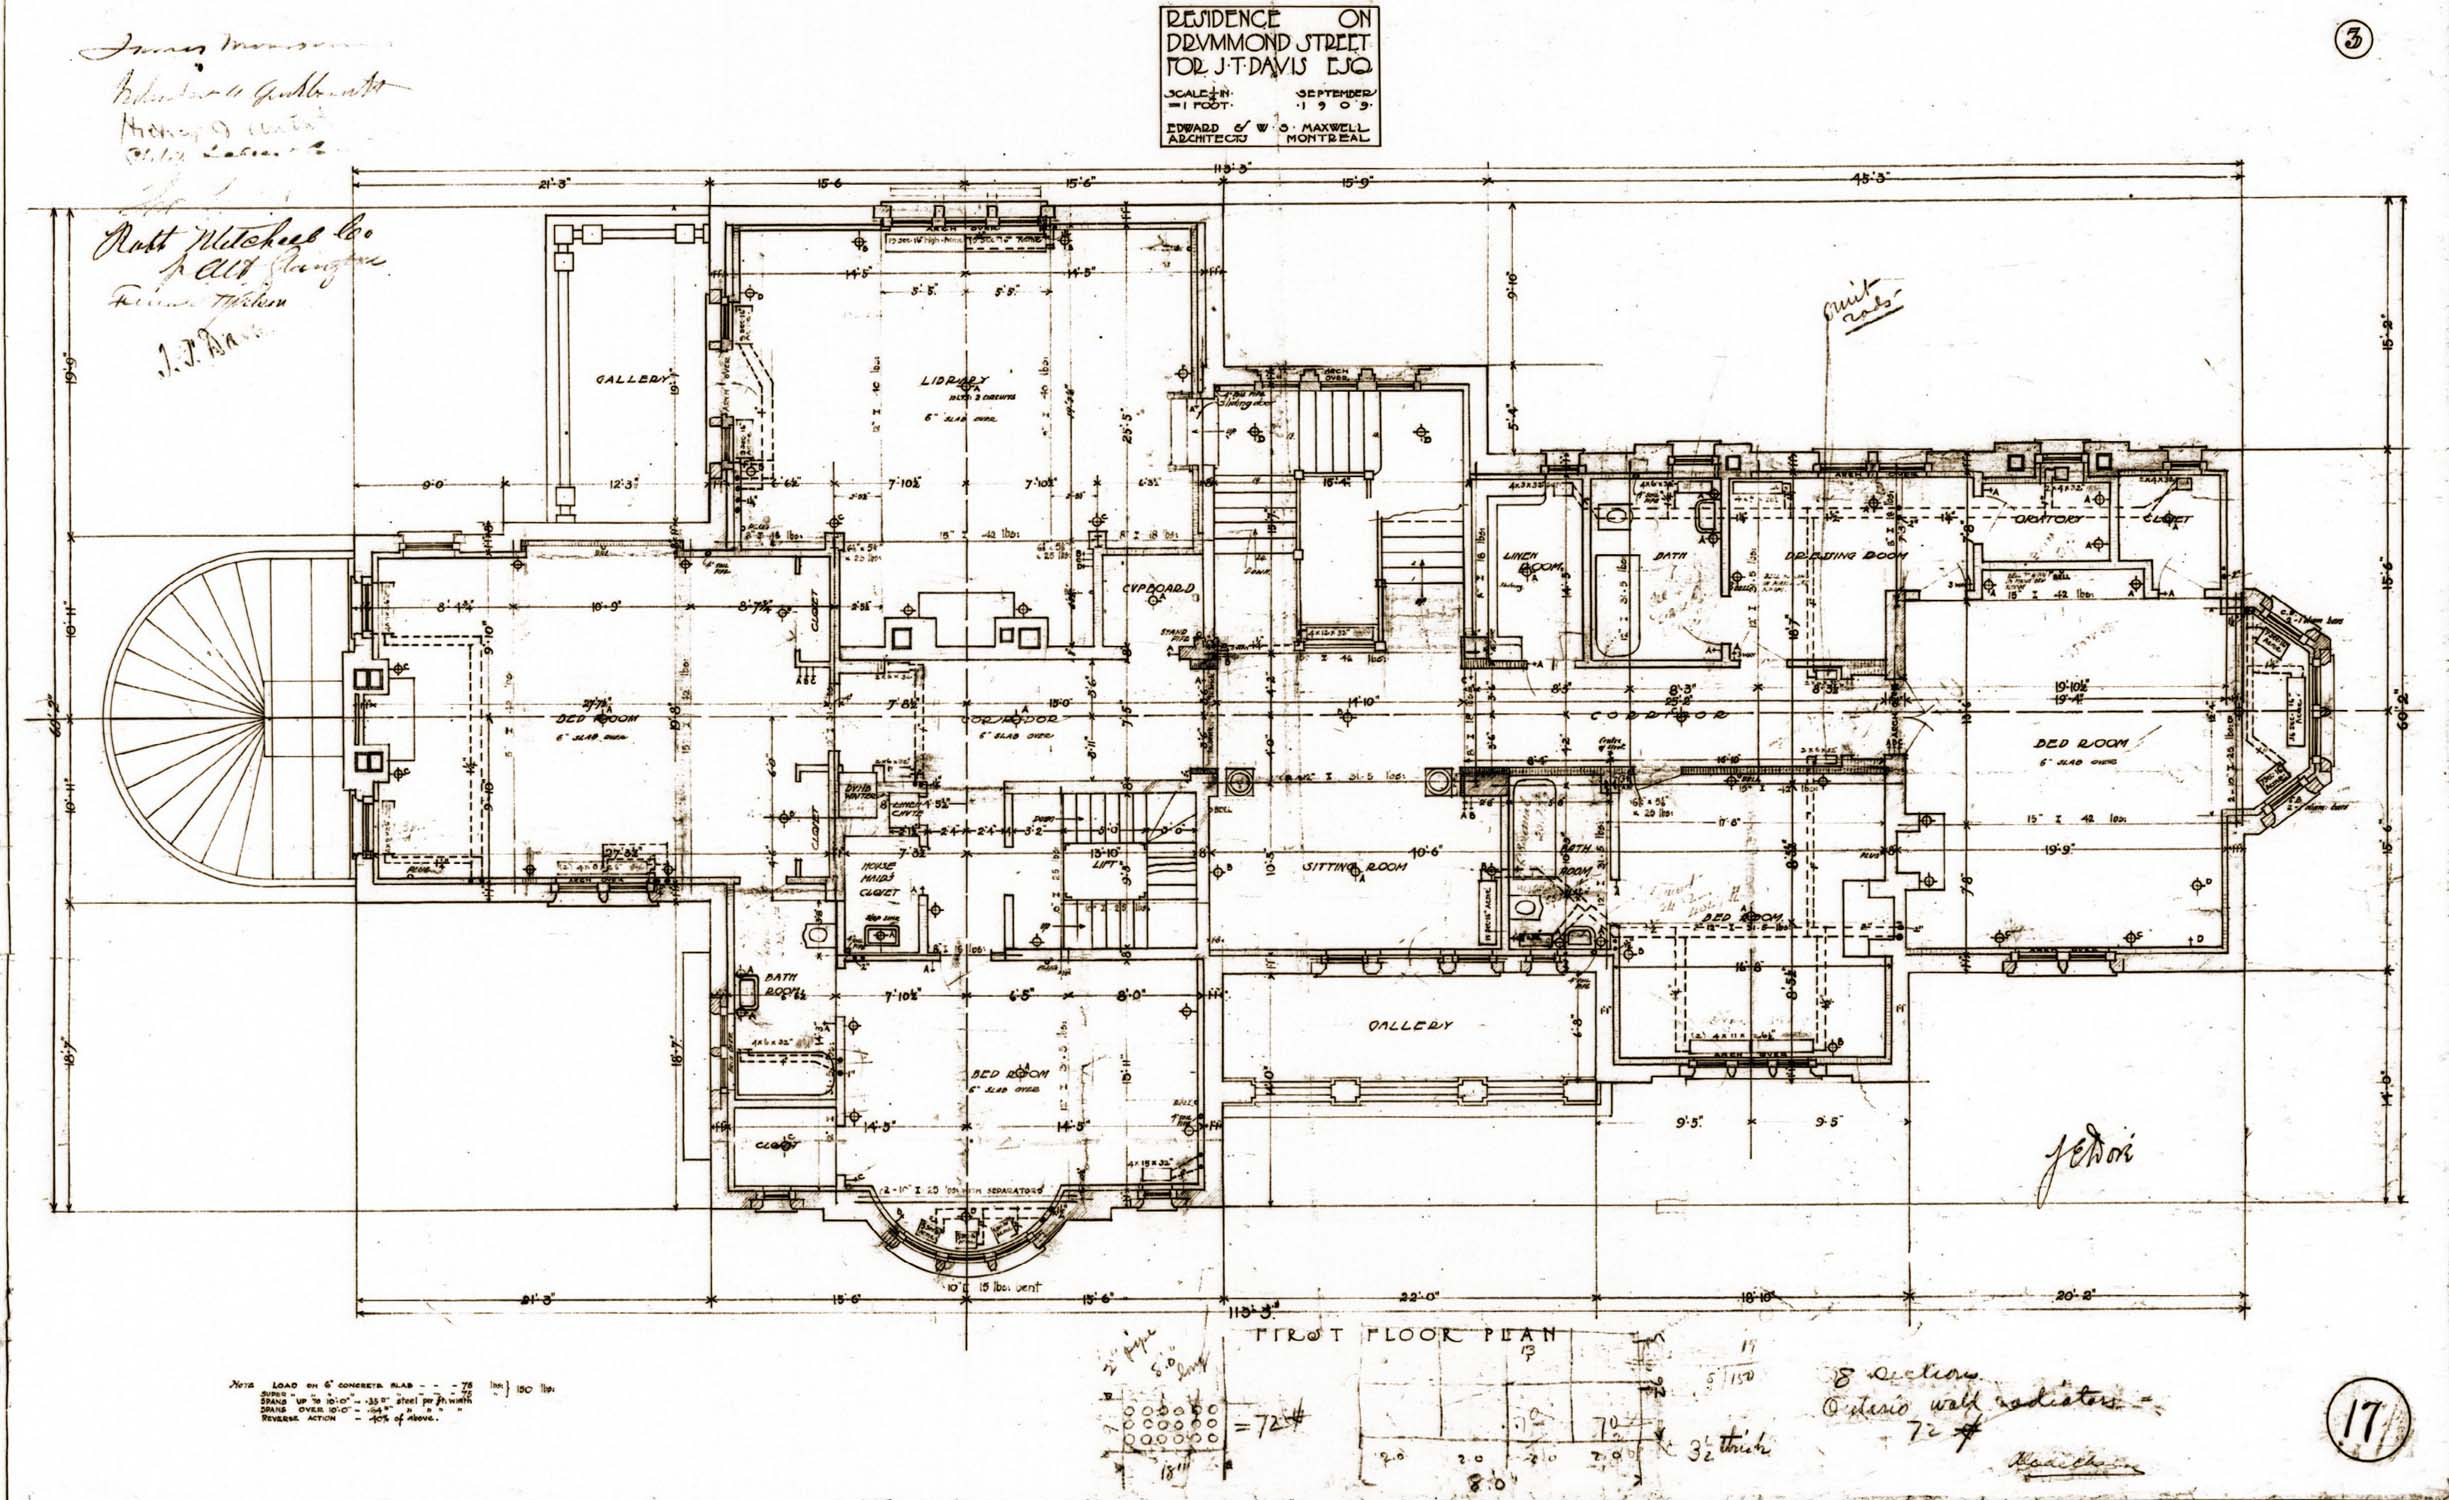 Ground floor plan first floor plan Home plan drawing